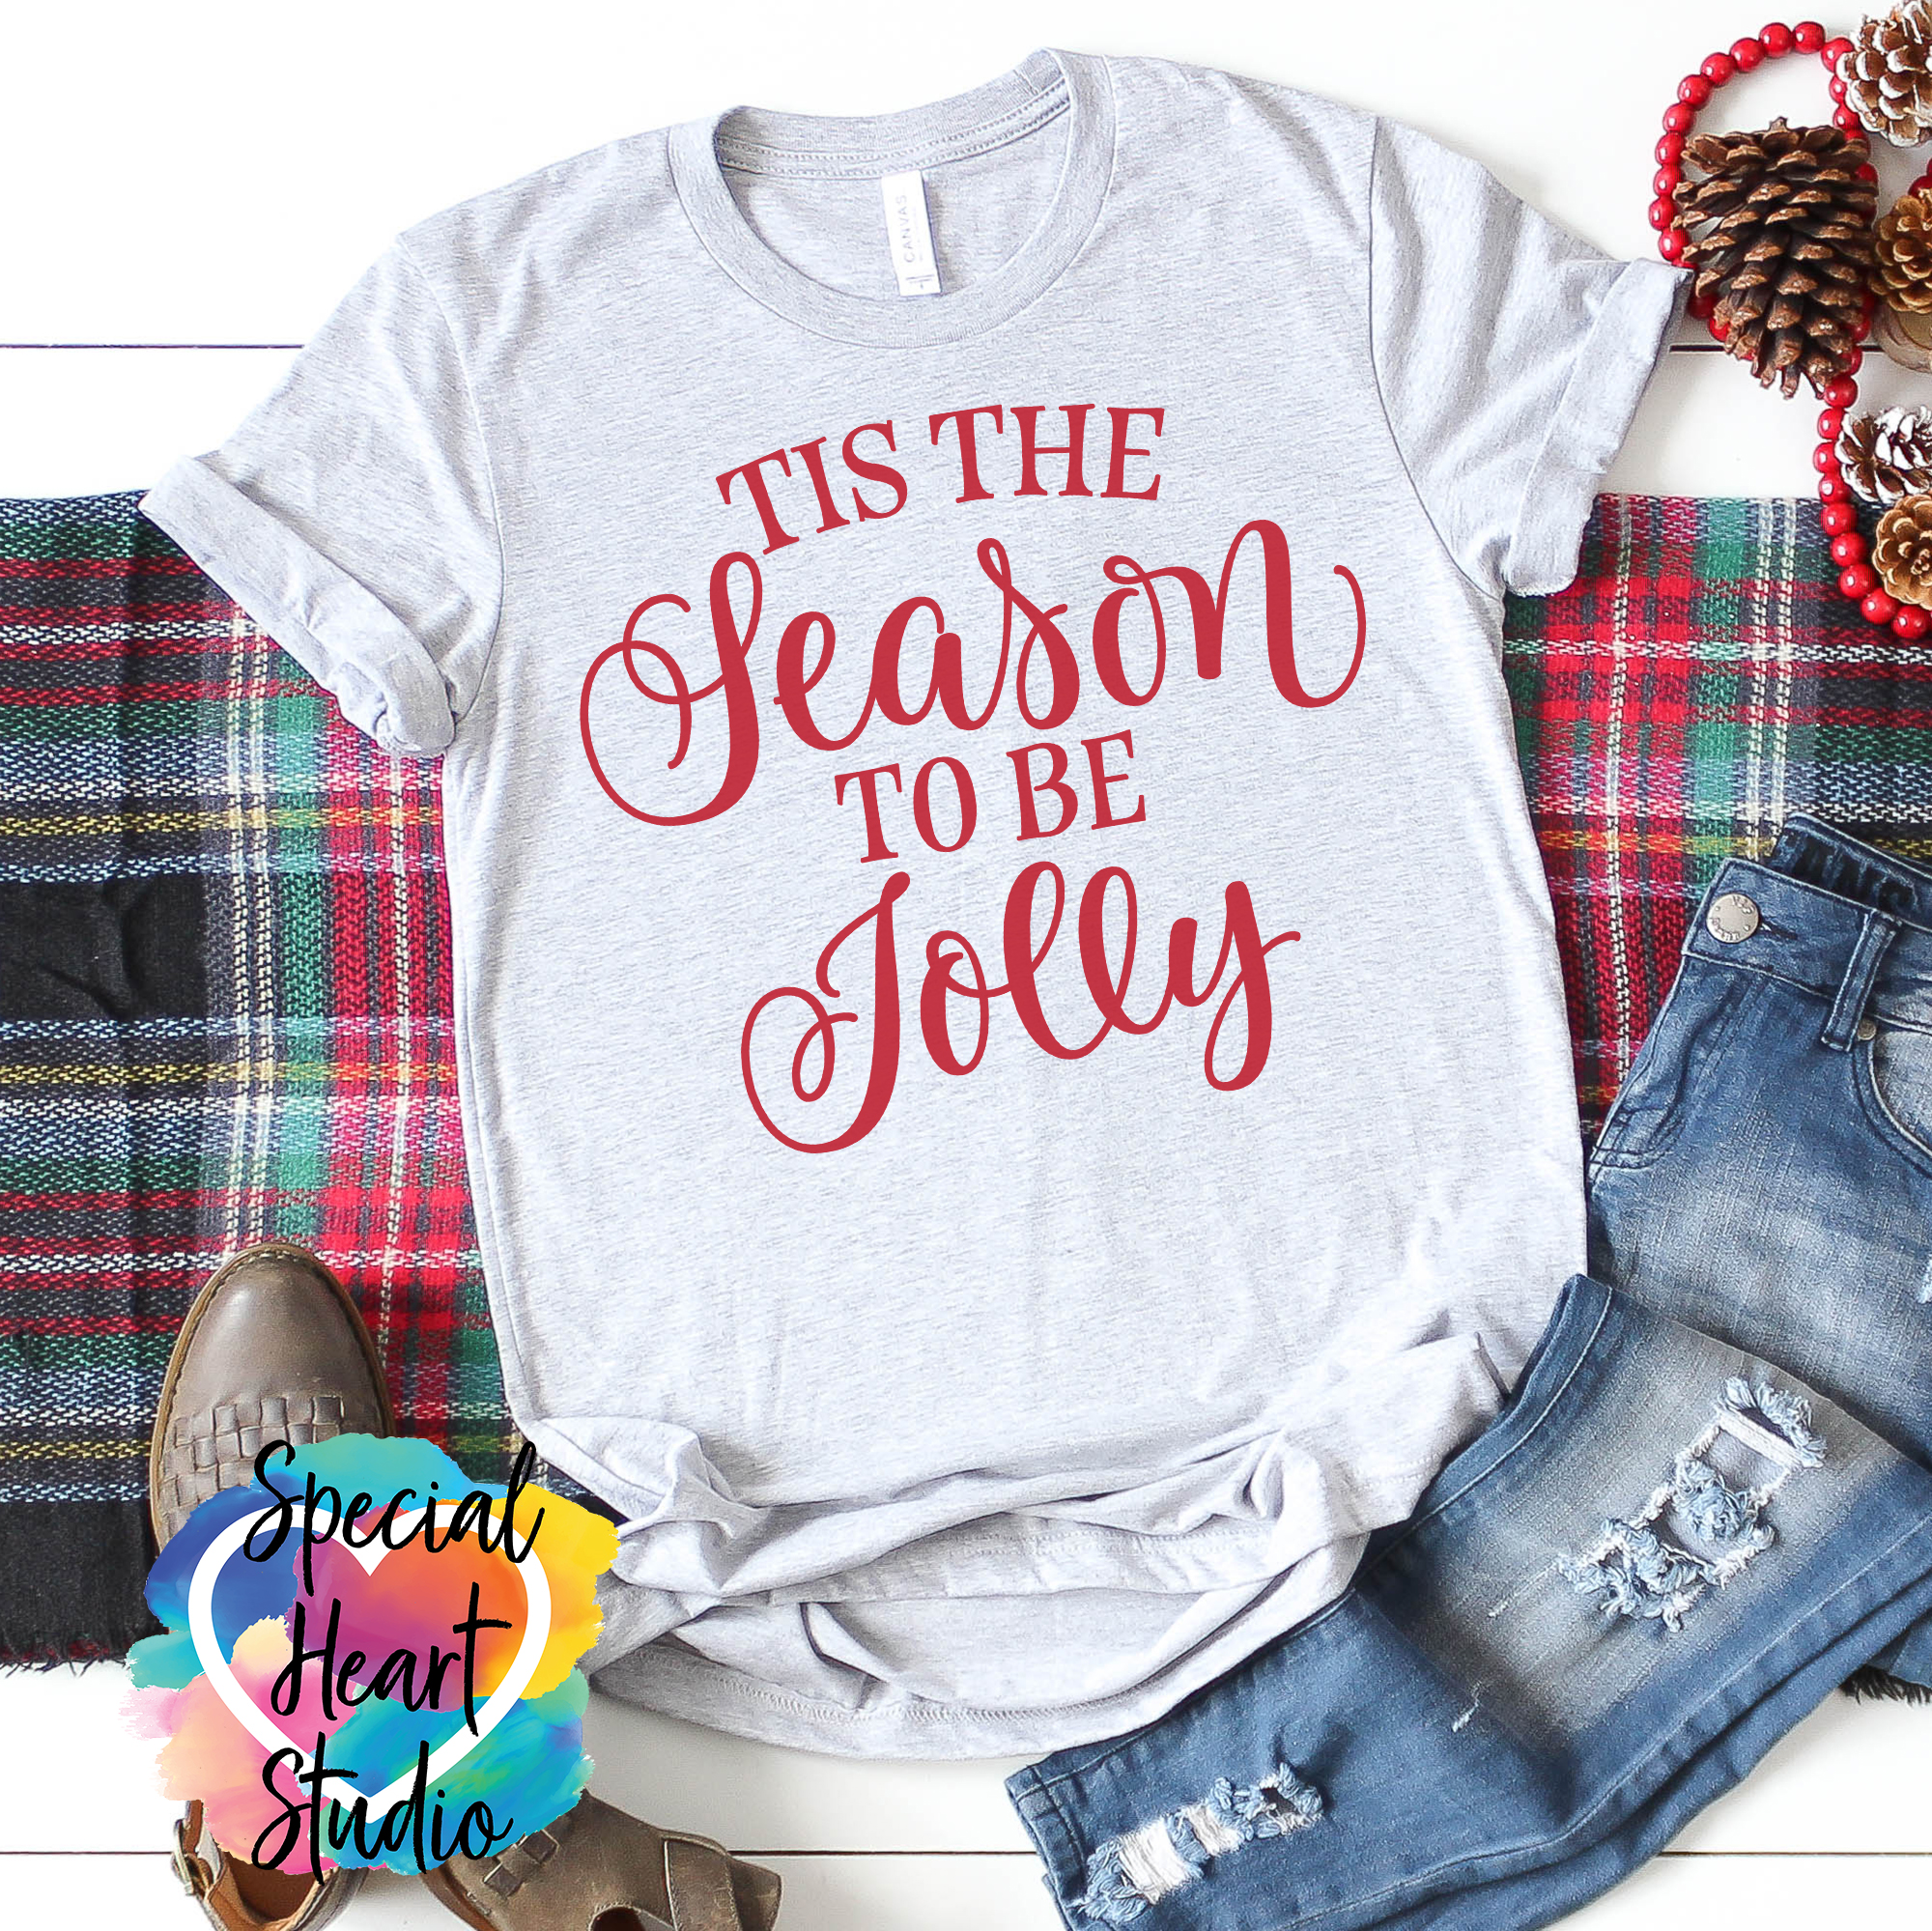 Tis The Season To Be Jolly Svg Cut File Special Heart Studio